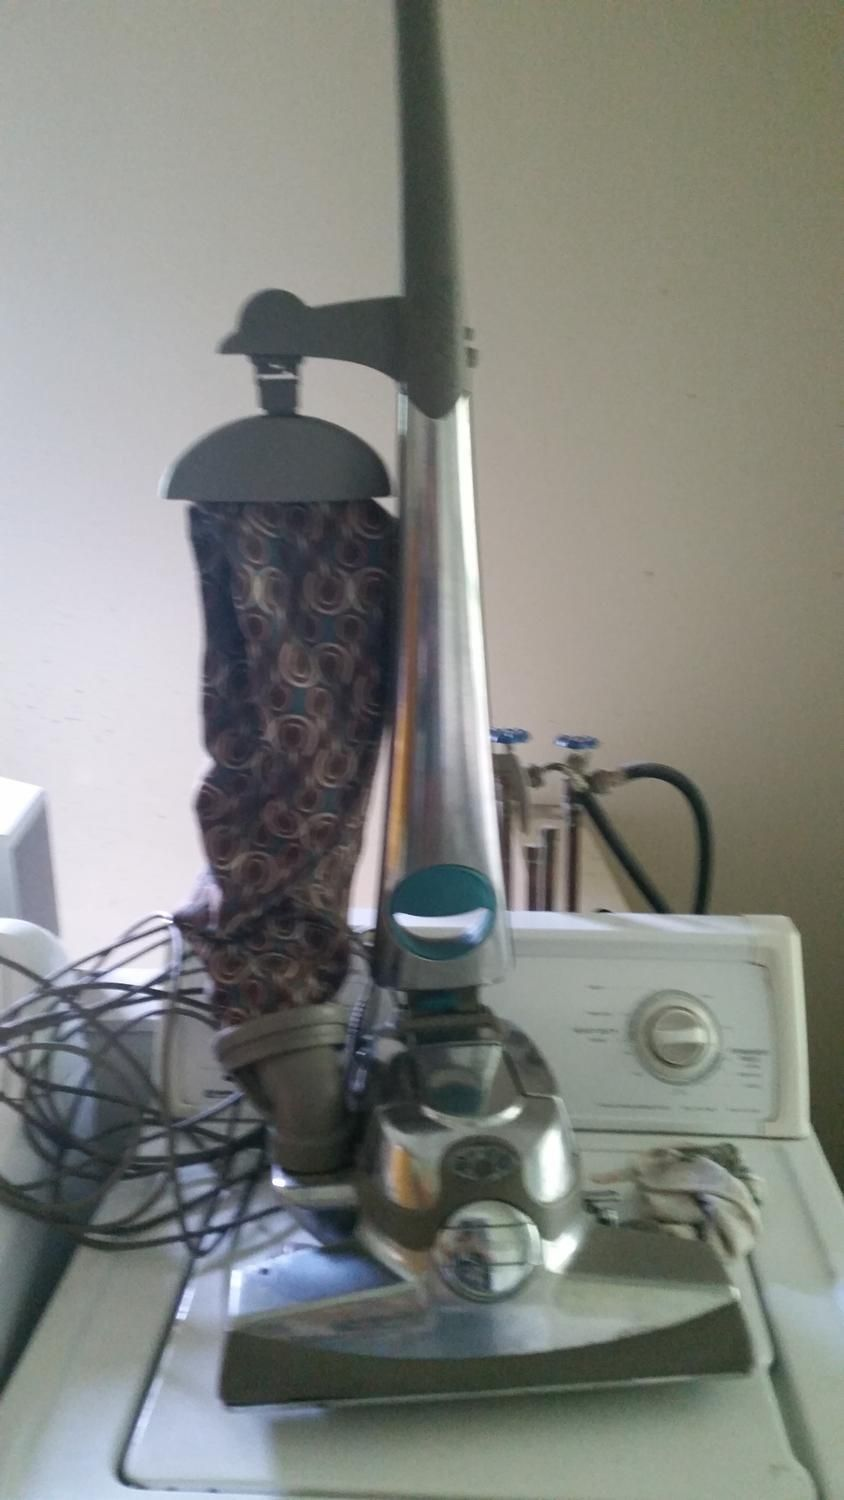 For Sale Kirby Vacuum Kirby Vacuum Kirby Cleaning